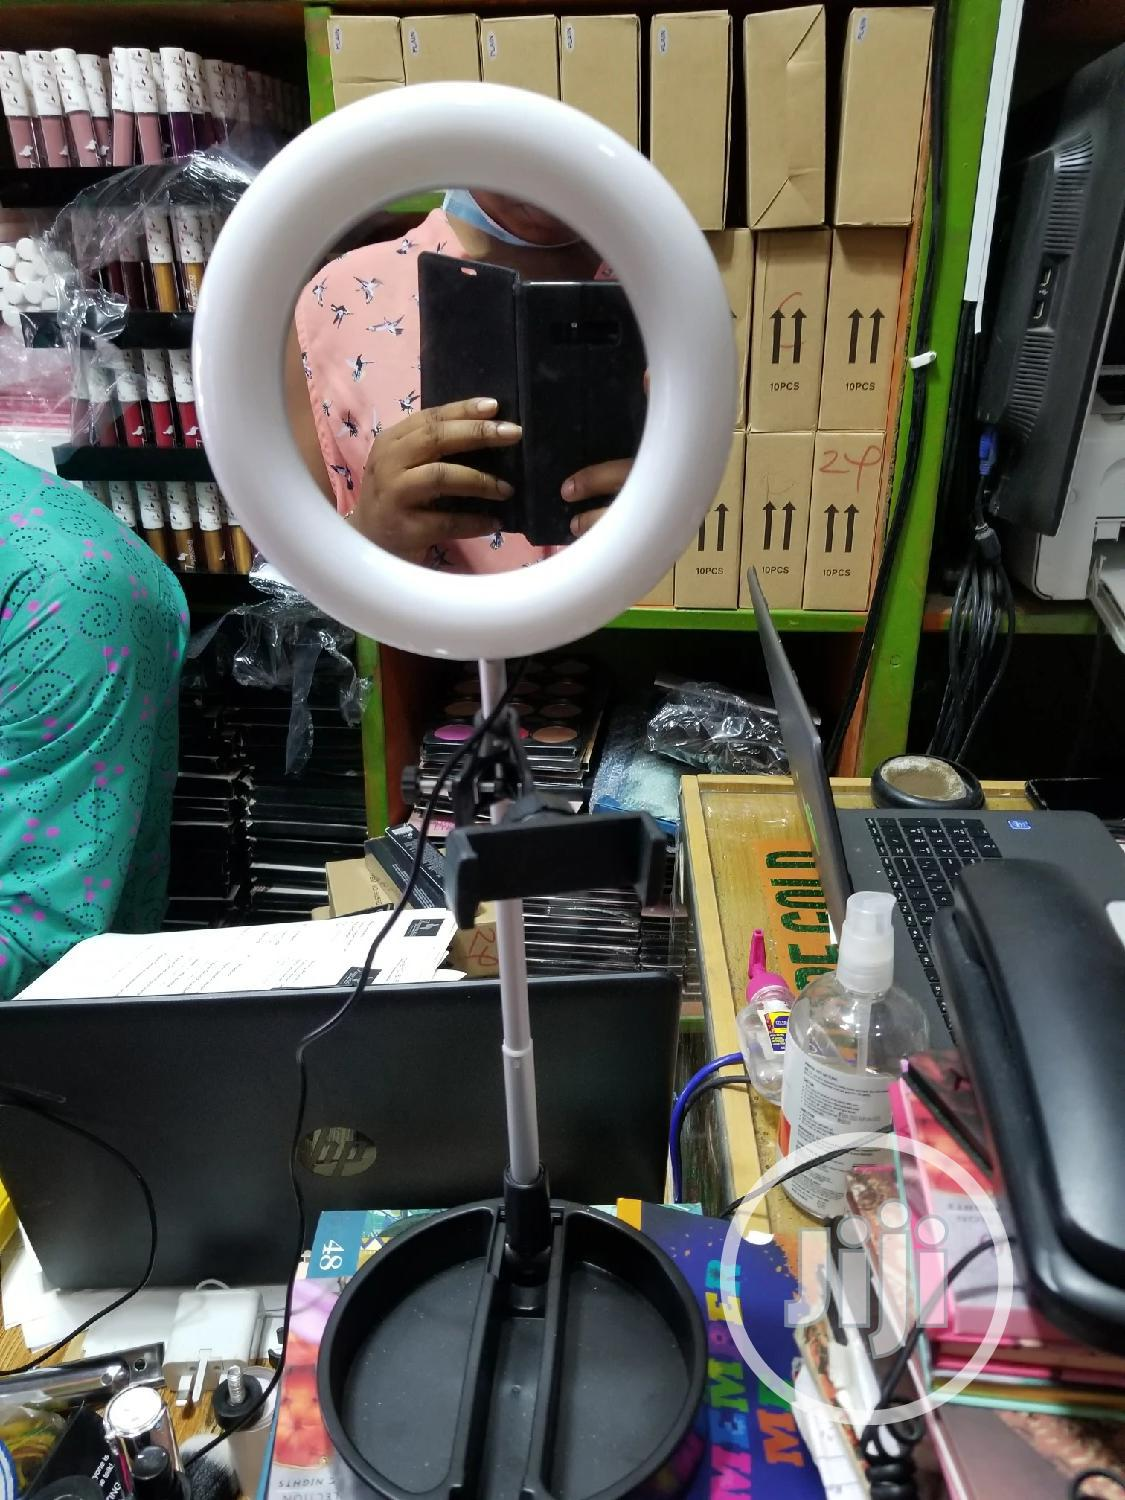 Foldable Ring Light With Phone Holder And Mirror.